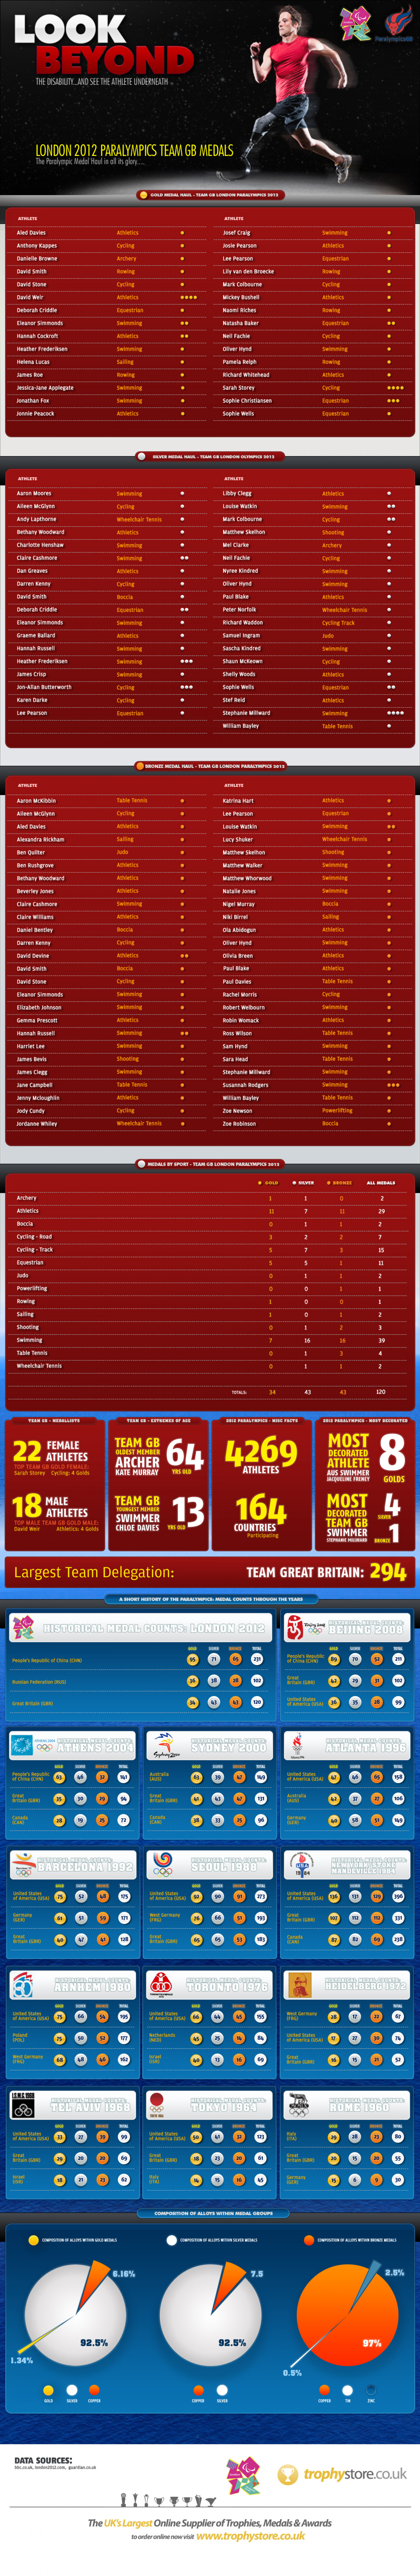 London 2012 Paralympics Team GB Medals Infographic Infographic